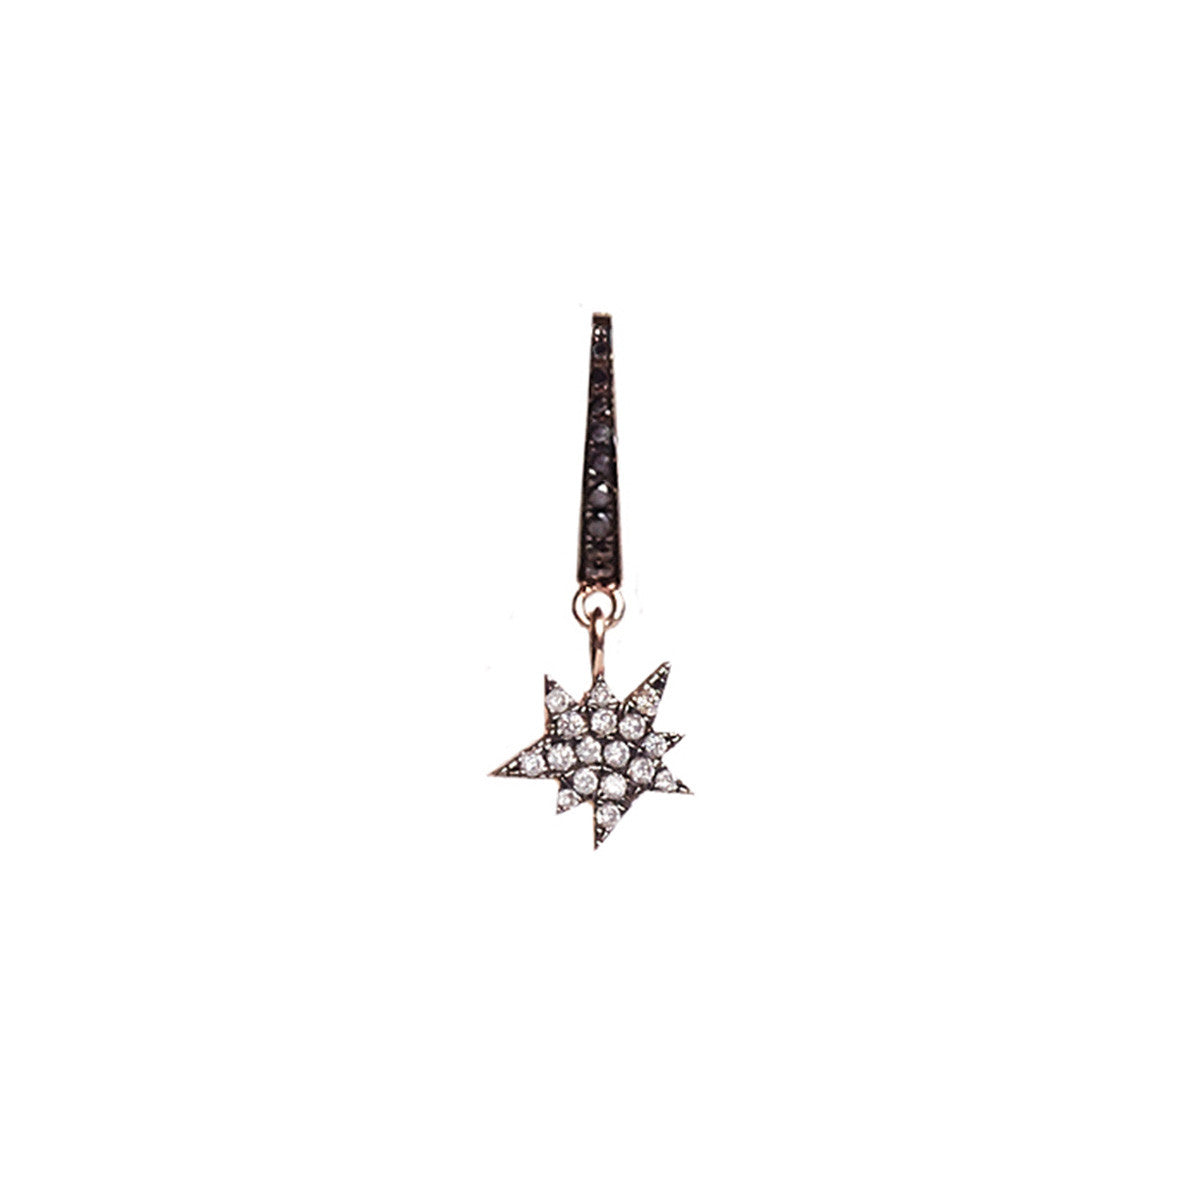 Cosmos Black Diamond Explosion Charm Earring